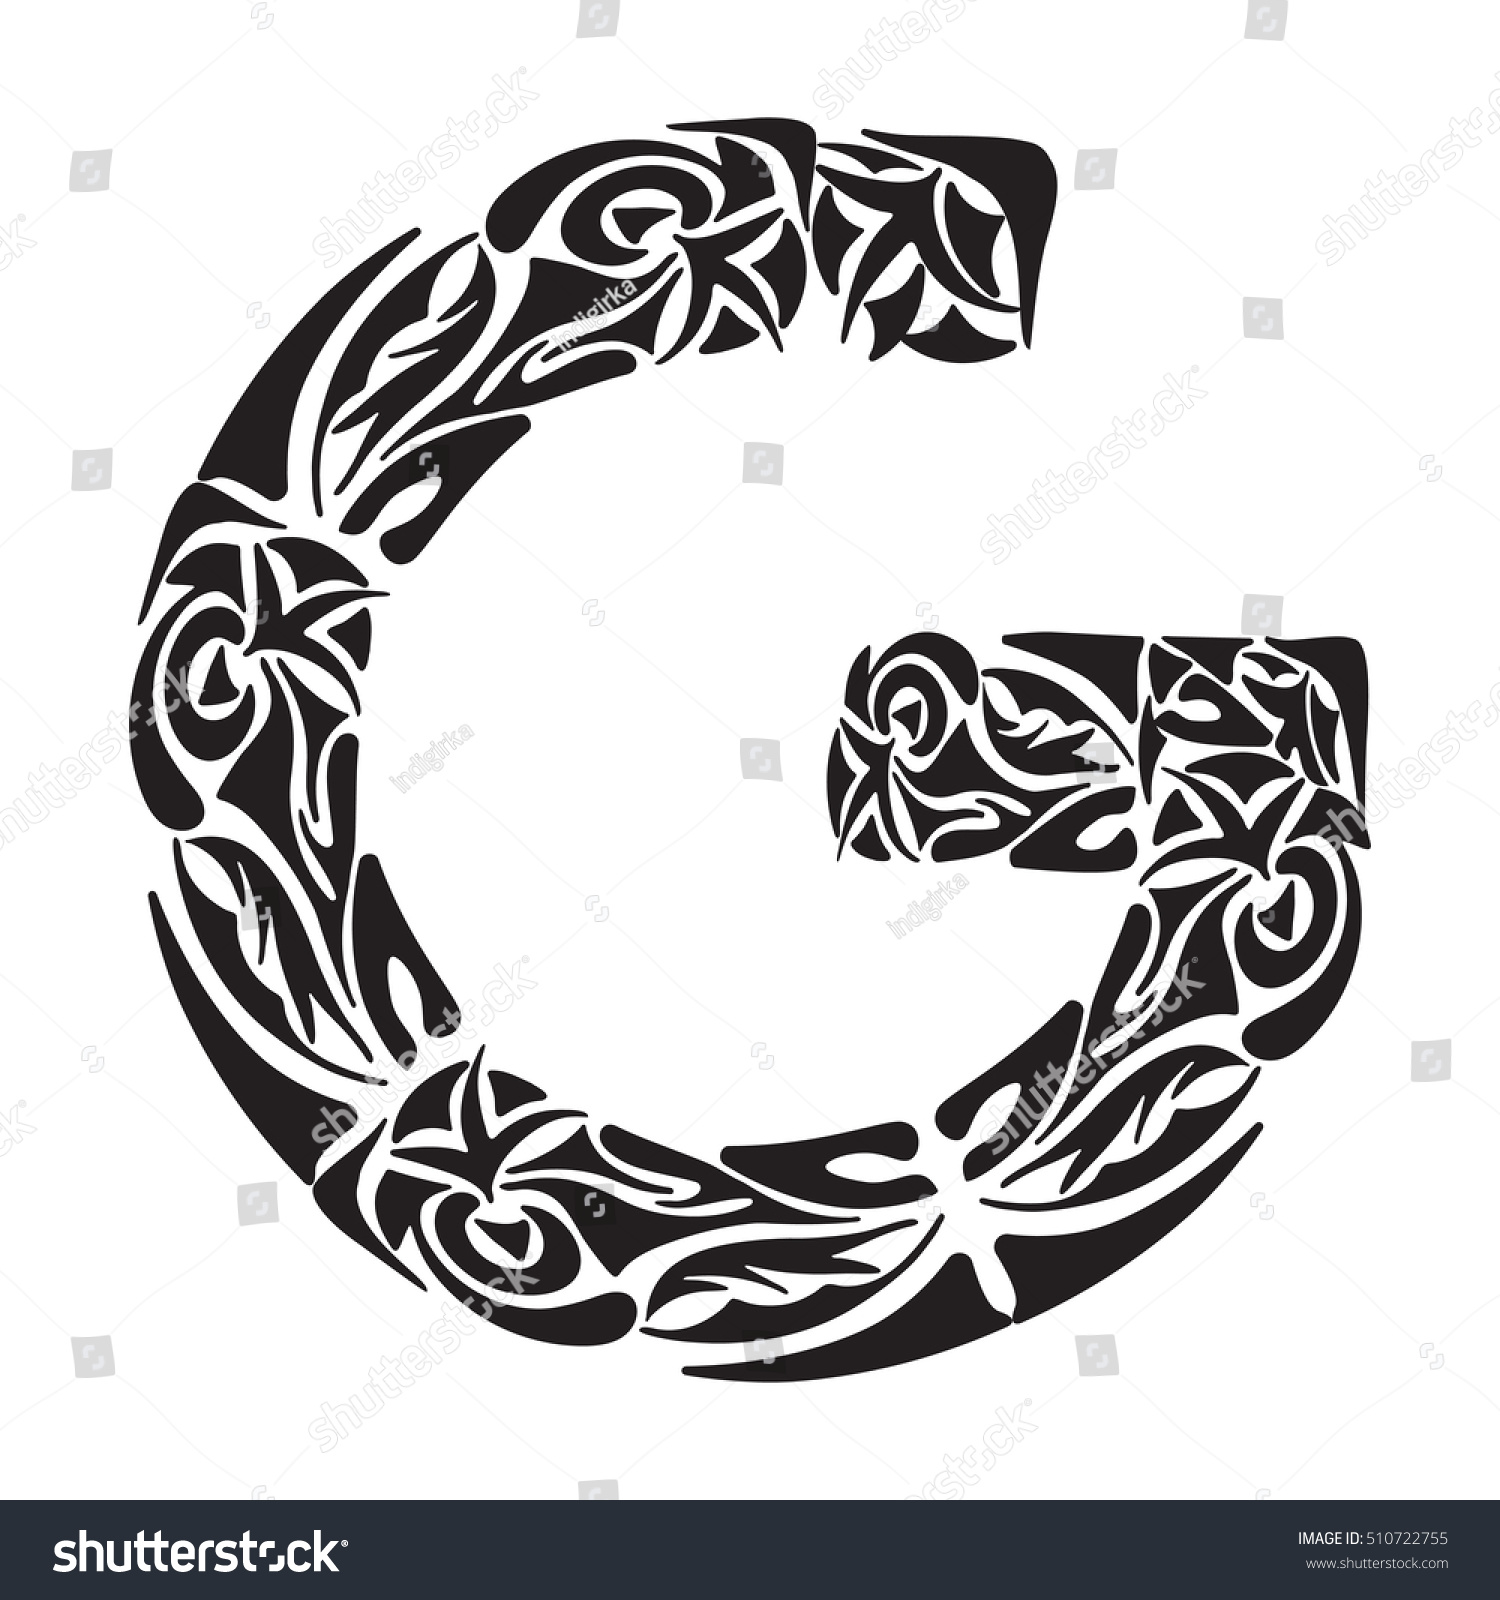 Boho Capital Letter G Vector Illustration For Coloring Page Tattoos Invitations Or Decoration Tribal Design Element Stock Photo